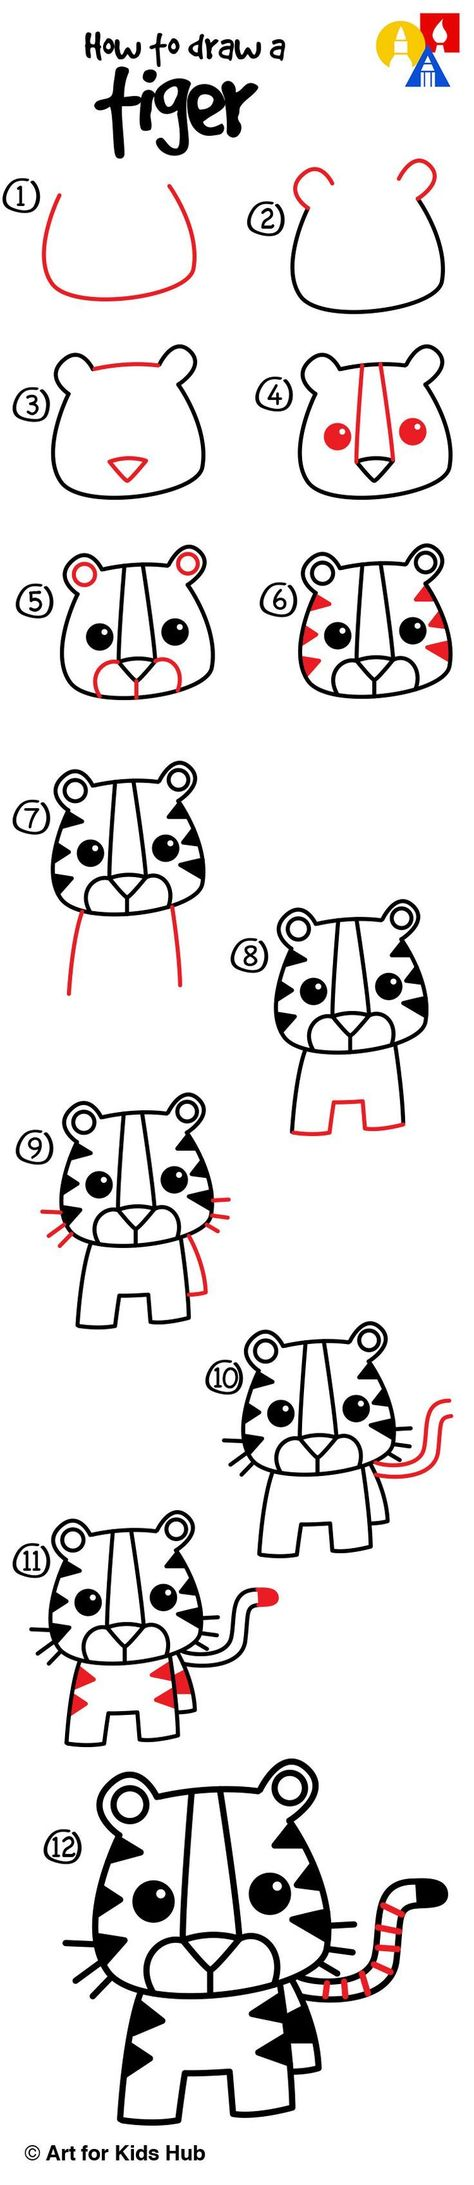 How To Draw A Cartoon Tiger Art For Kids Hub Kawaii Drawings